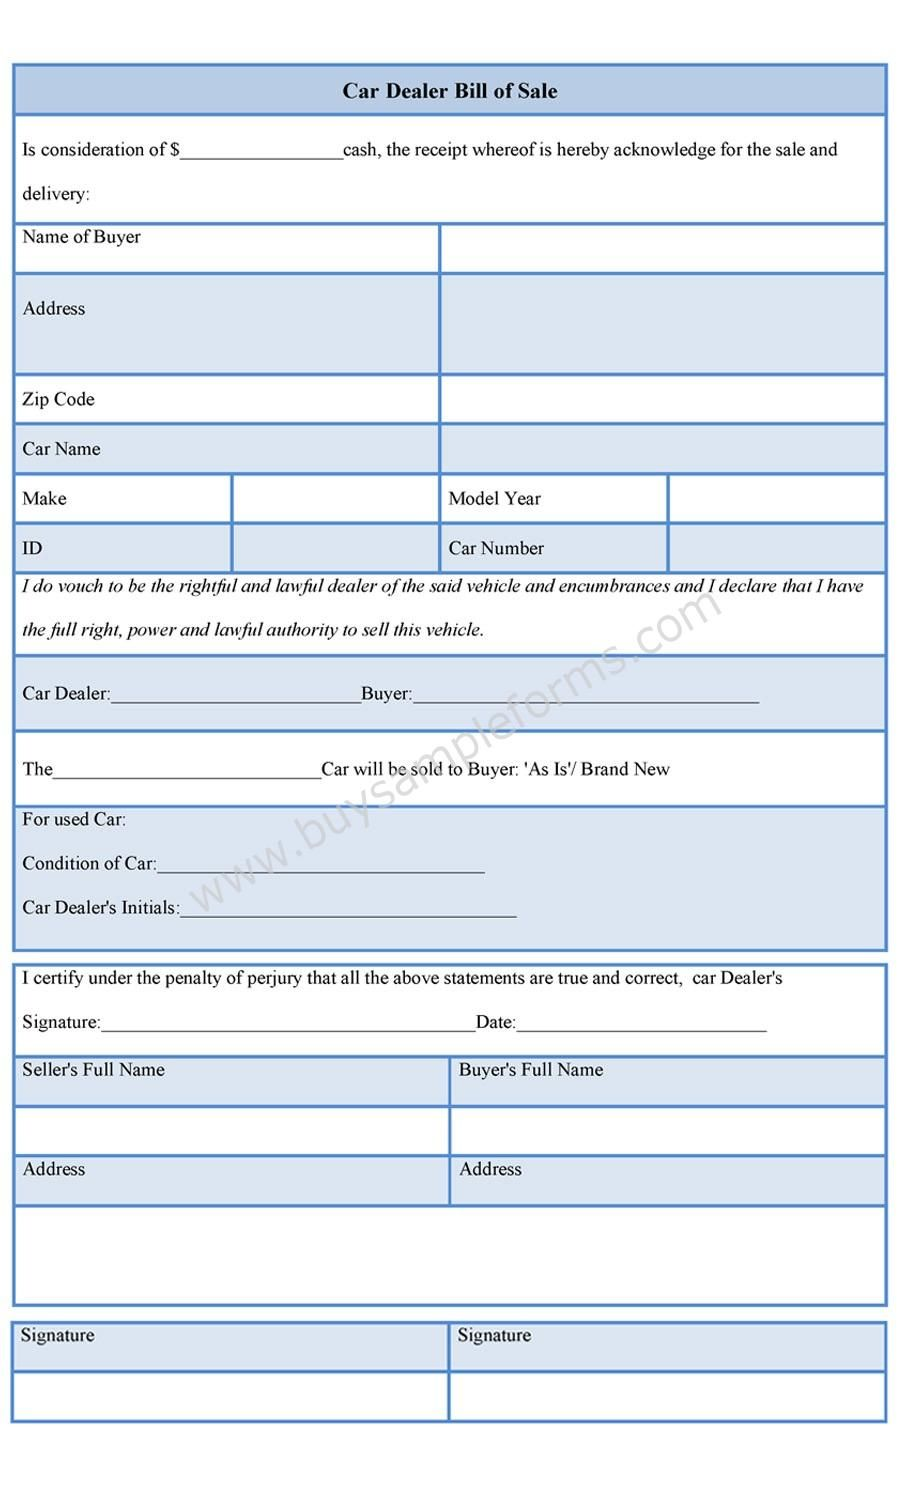 Download Sample Car Dealer Bill Of Sale Template Is Available Online In  Both MS Word And  Microsoft Office Bill Of Sale Template